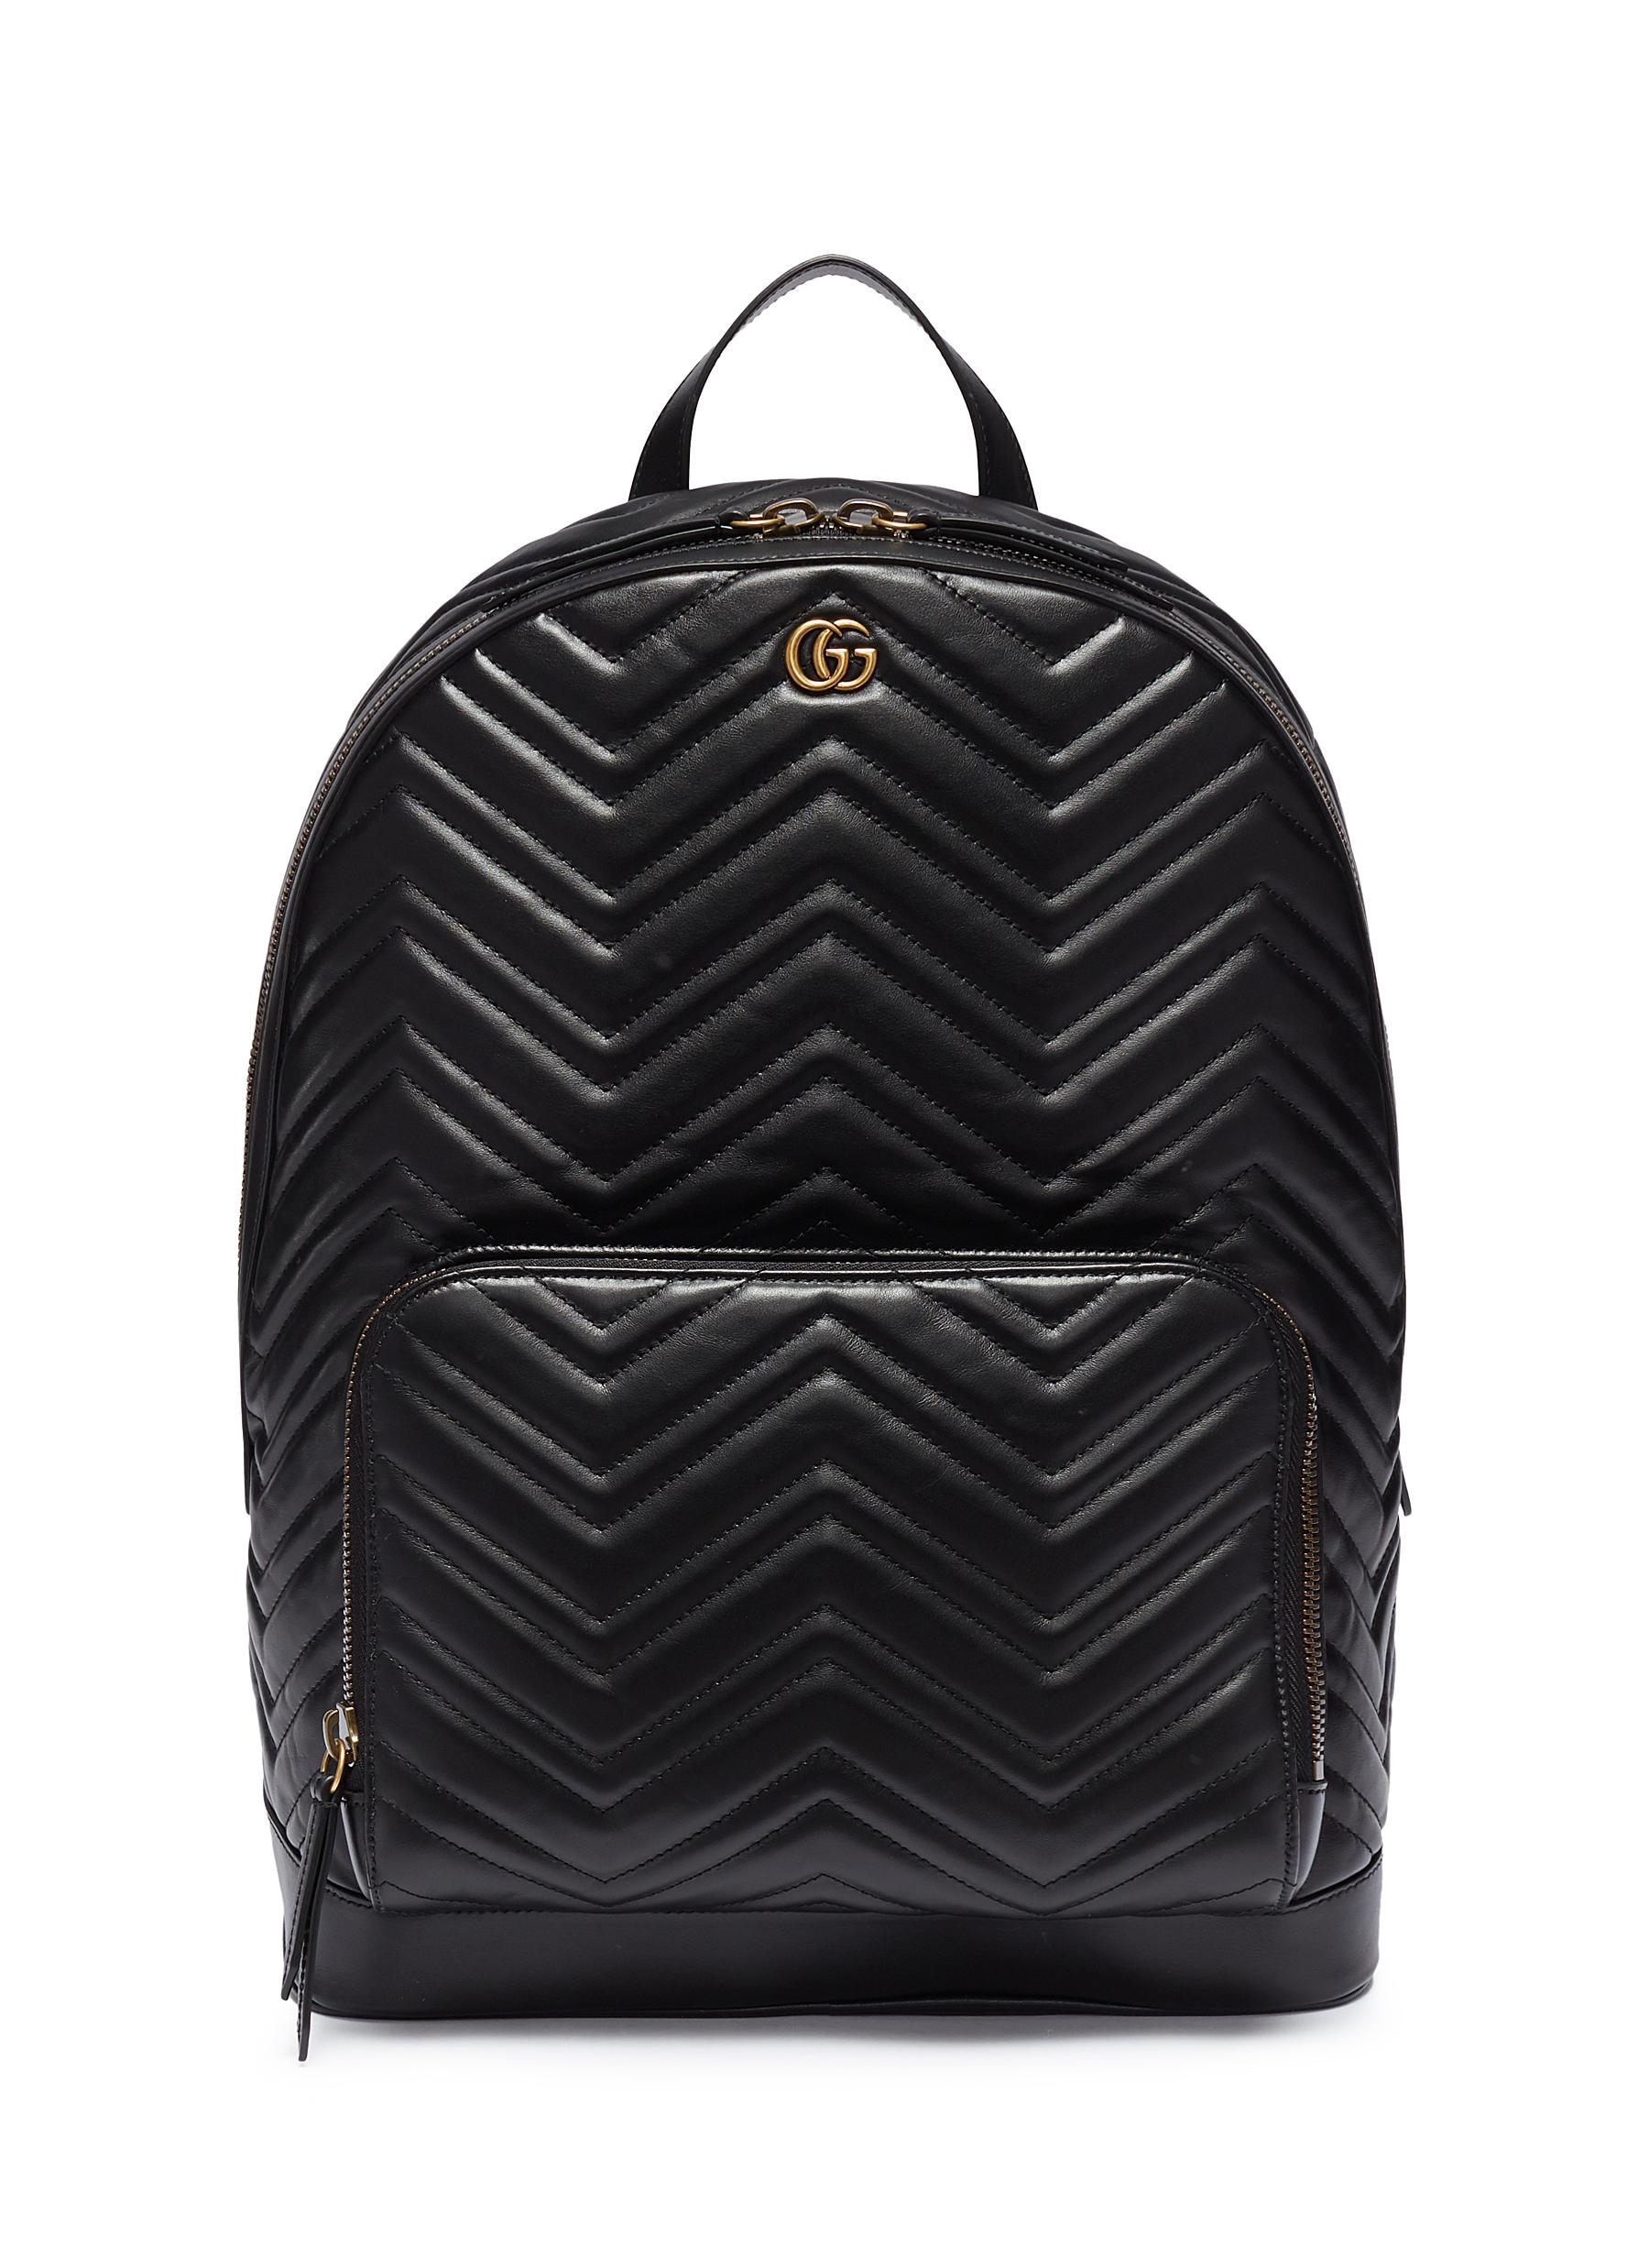 b1cee46ed67 Gucci.  GG Marmont  matelassé leather backpack